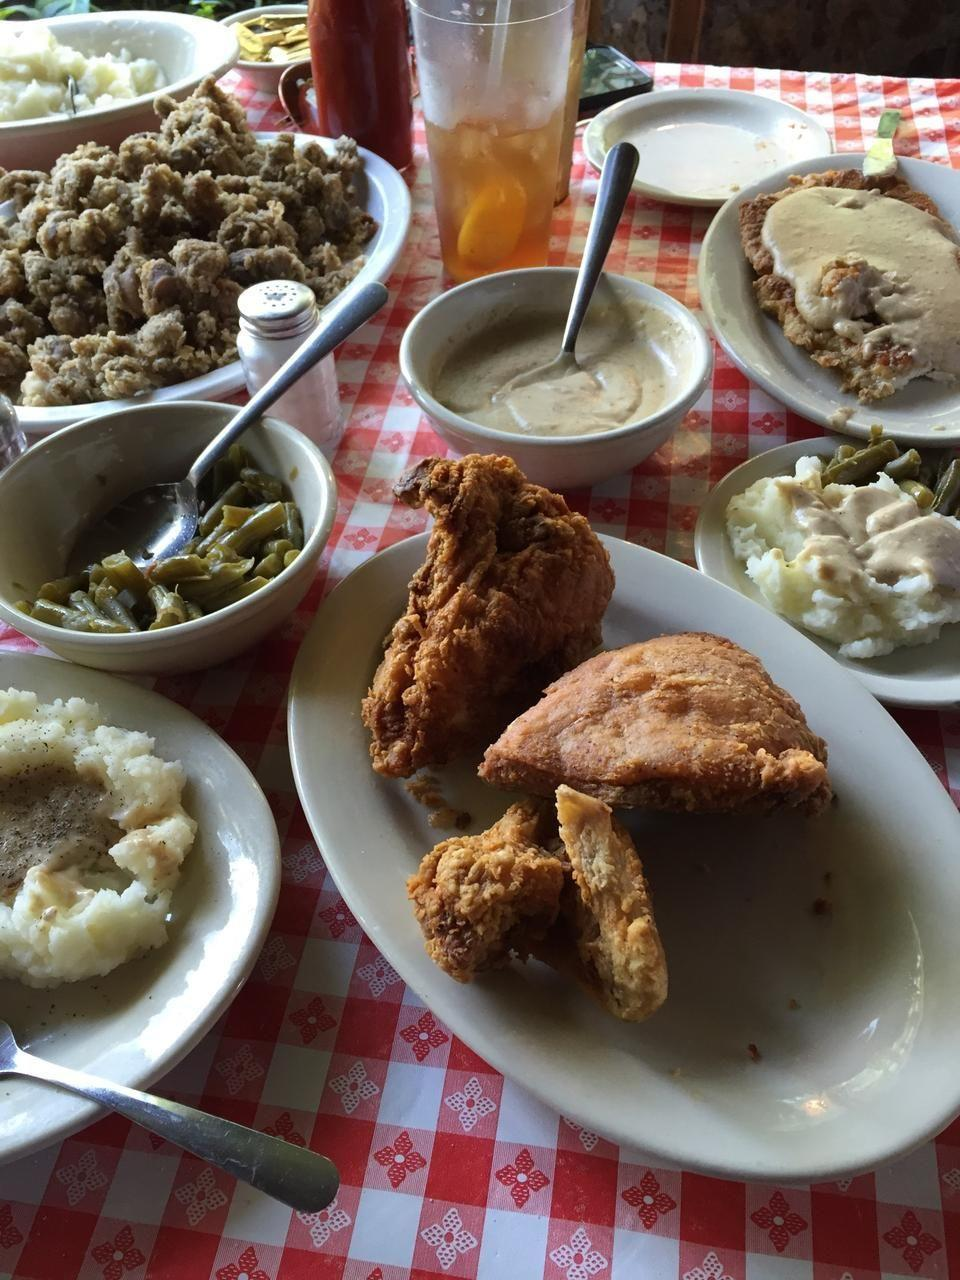 """<p><a href=""""https://www.tripadvisor.com/Restaurant_Review-g44535-d390661-Reviews-Stroud_s_Restaurant_Bar-Kansas_City_Missouri.html"""" rel=""""nofollow noopener"""" target=""""_blank"""" data-ylk=""""slk:Stroud's Restaurant & Bar"""" class=""""link rapid-noclick-resp"""">Stroud's Restaurant & Bar</a>, Kansas City</p><p>This place has the best pan-fried chicken in the whole Midwest! The cinnamon rolls are quite a tasty treat too. - Foursquare user <a href=""""https://foursquare.com/user/62914888"""" rel=""""nofollow noopener"""" target=""""_blank"""" data-ylk=""""slk:Cheryl McOsker"""" class=""""link rapid-noclick-resp"""">Cheryl McOsker</a></p>"""